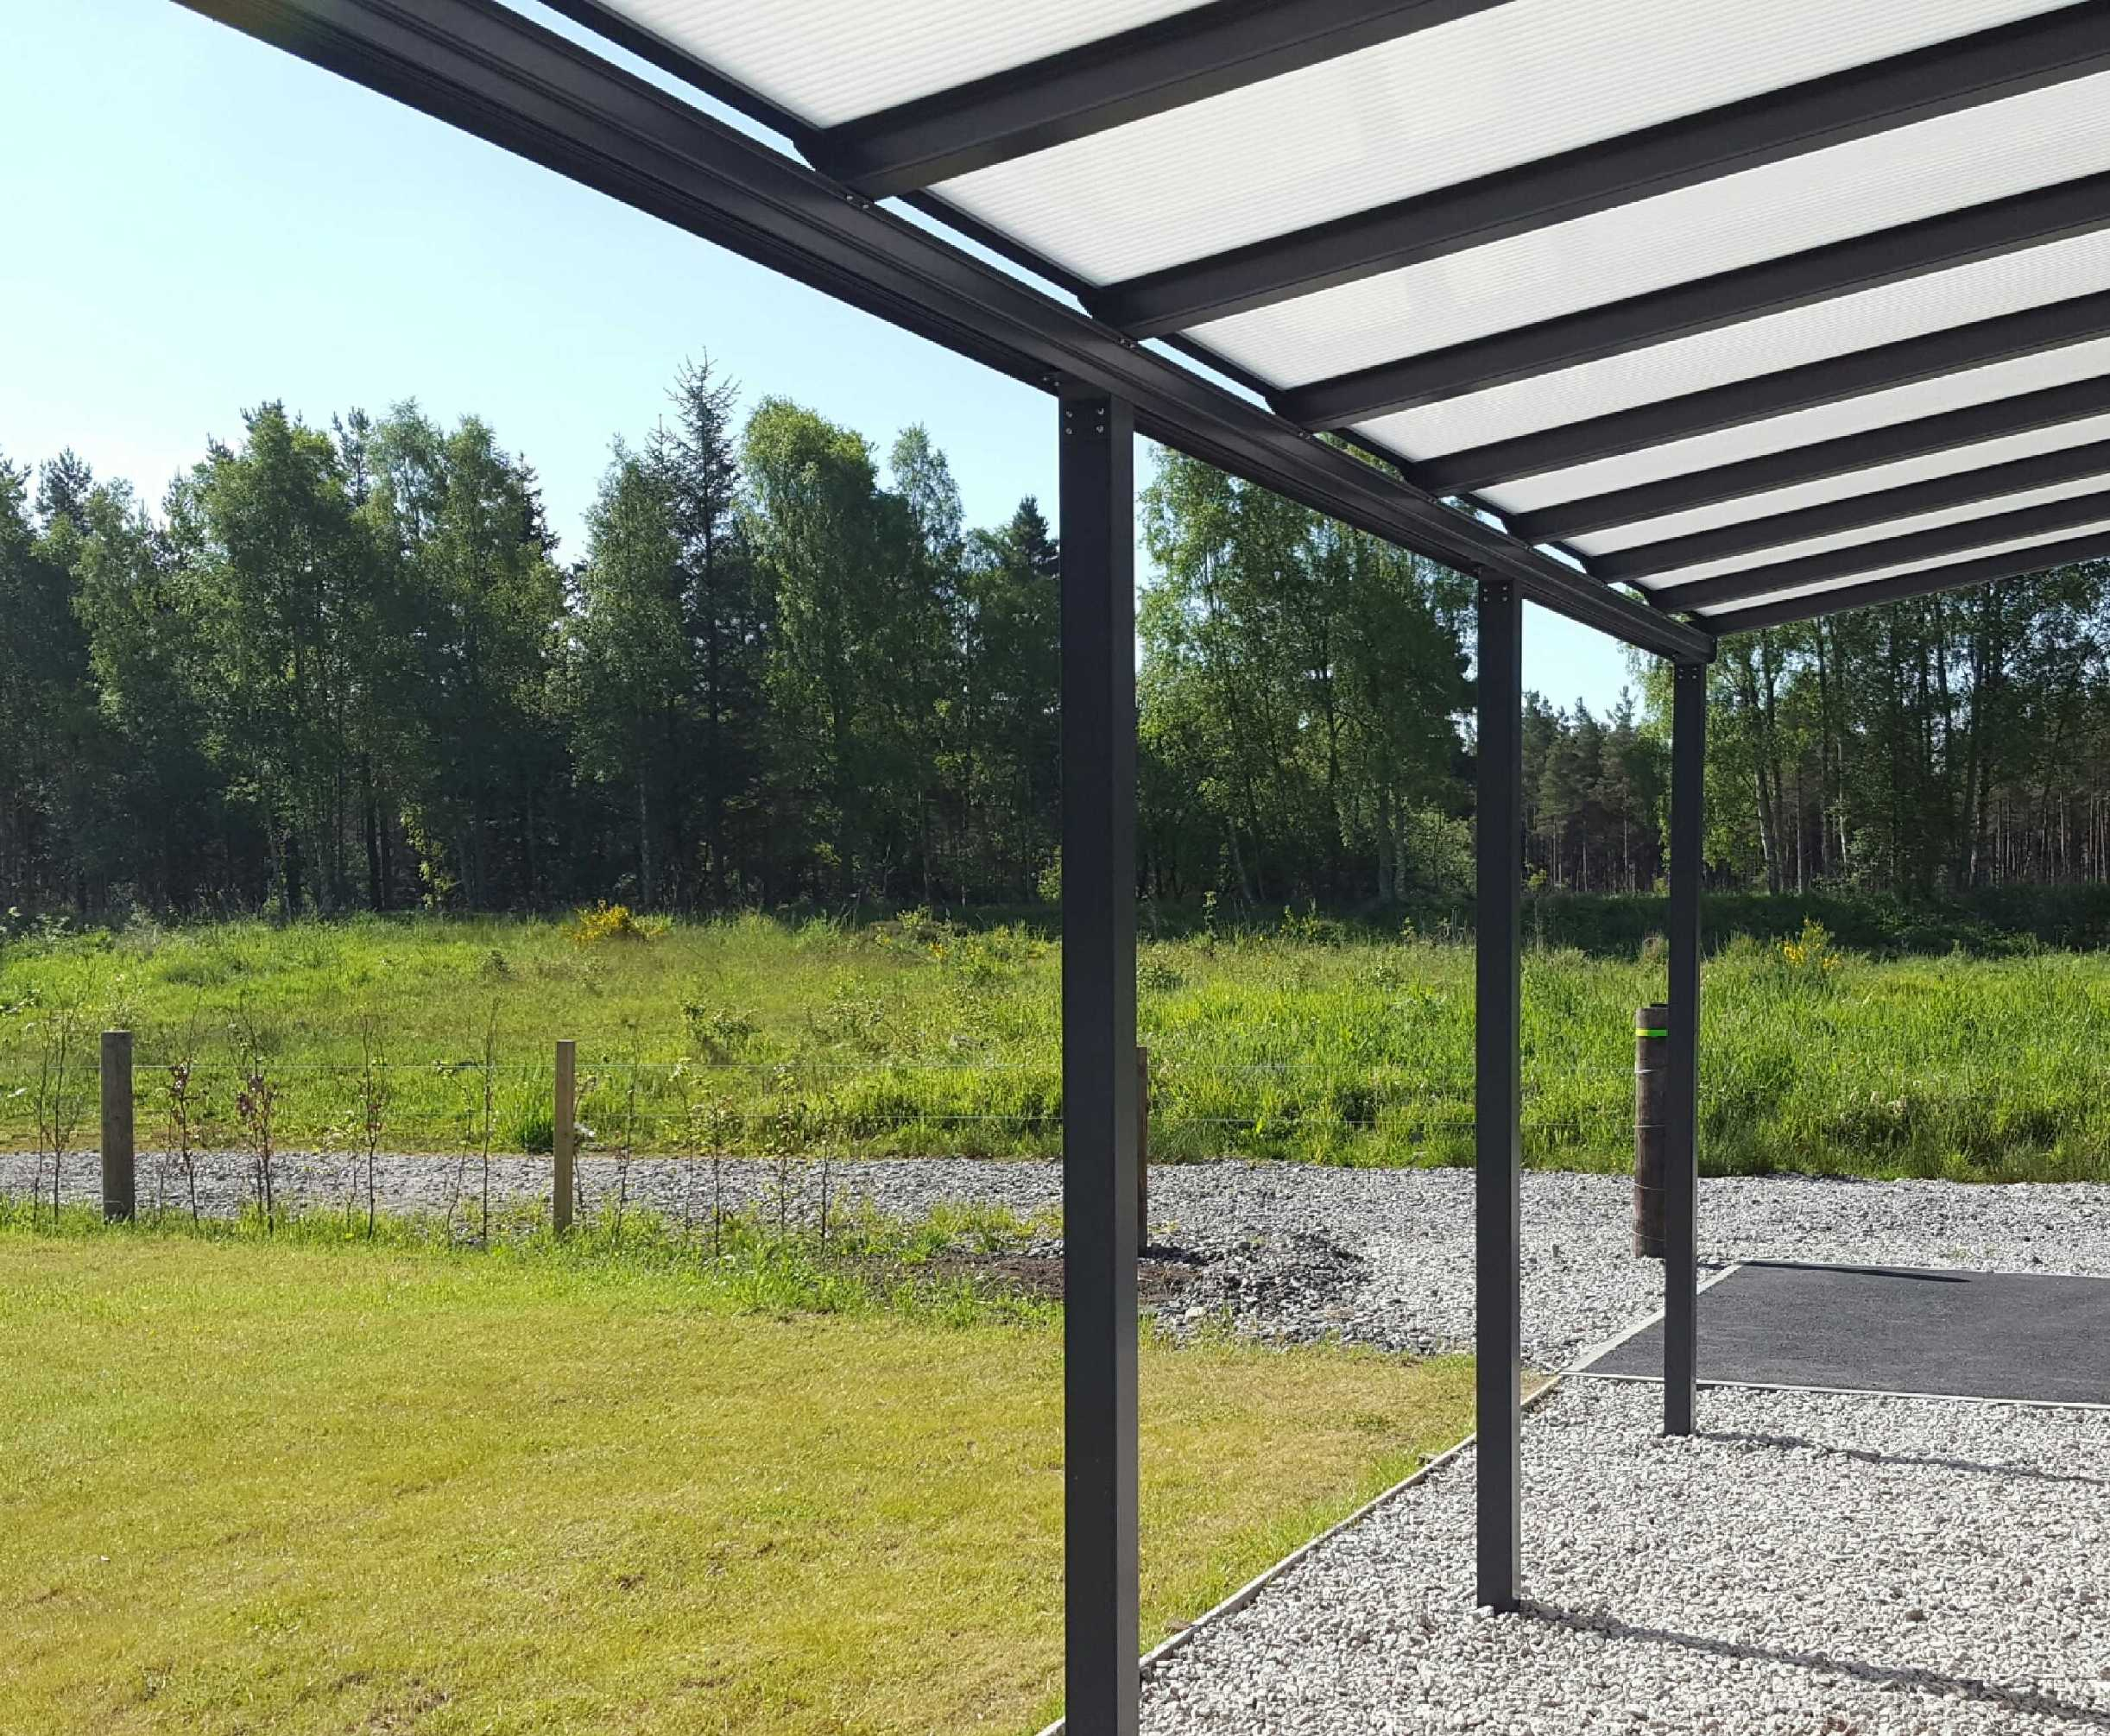 Omega Smart Lean-To Canopy, Anthracite Grey, 16mm Polycarbonate Glazing - 3.1m (W) x 4.5m (P), (2) Supporting Posts